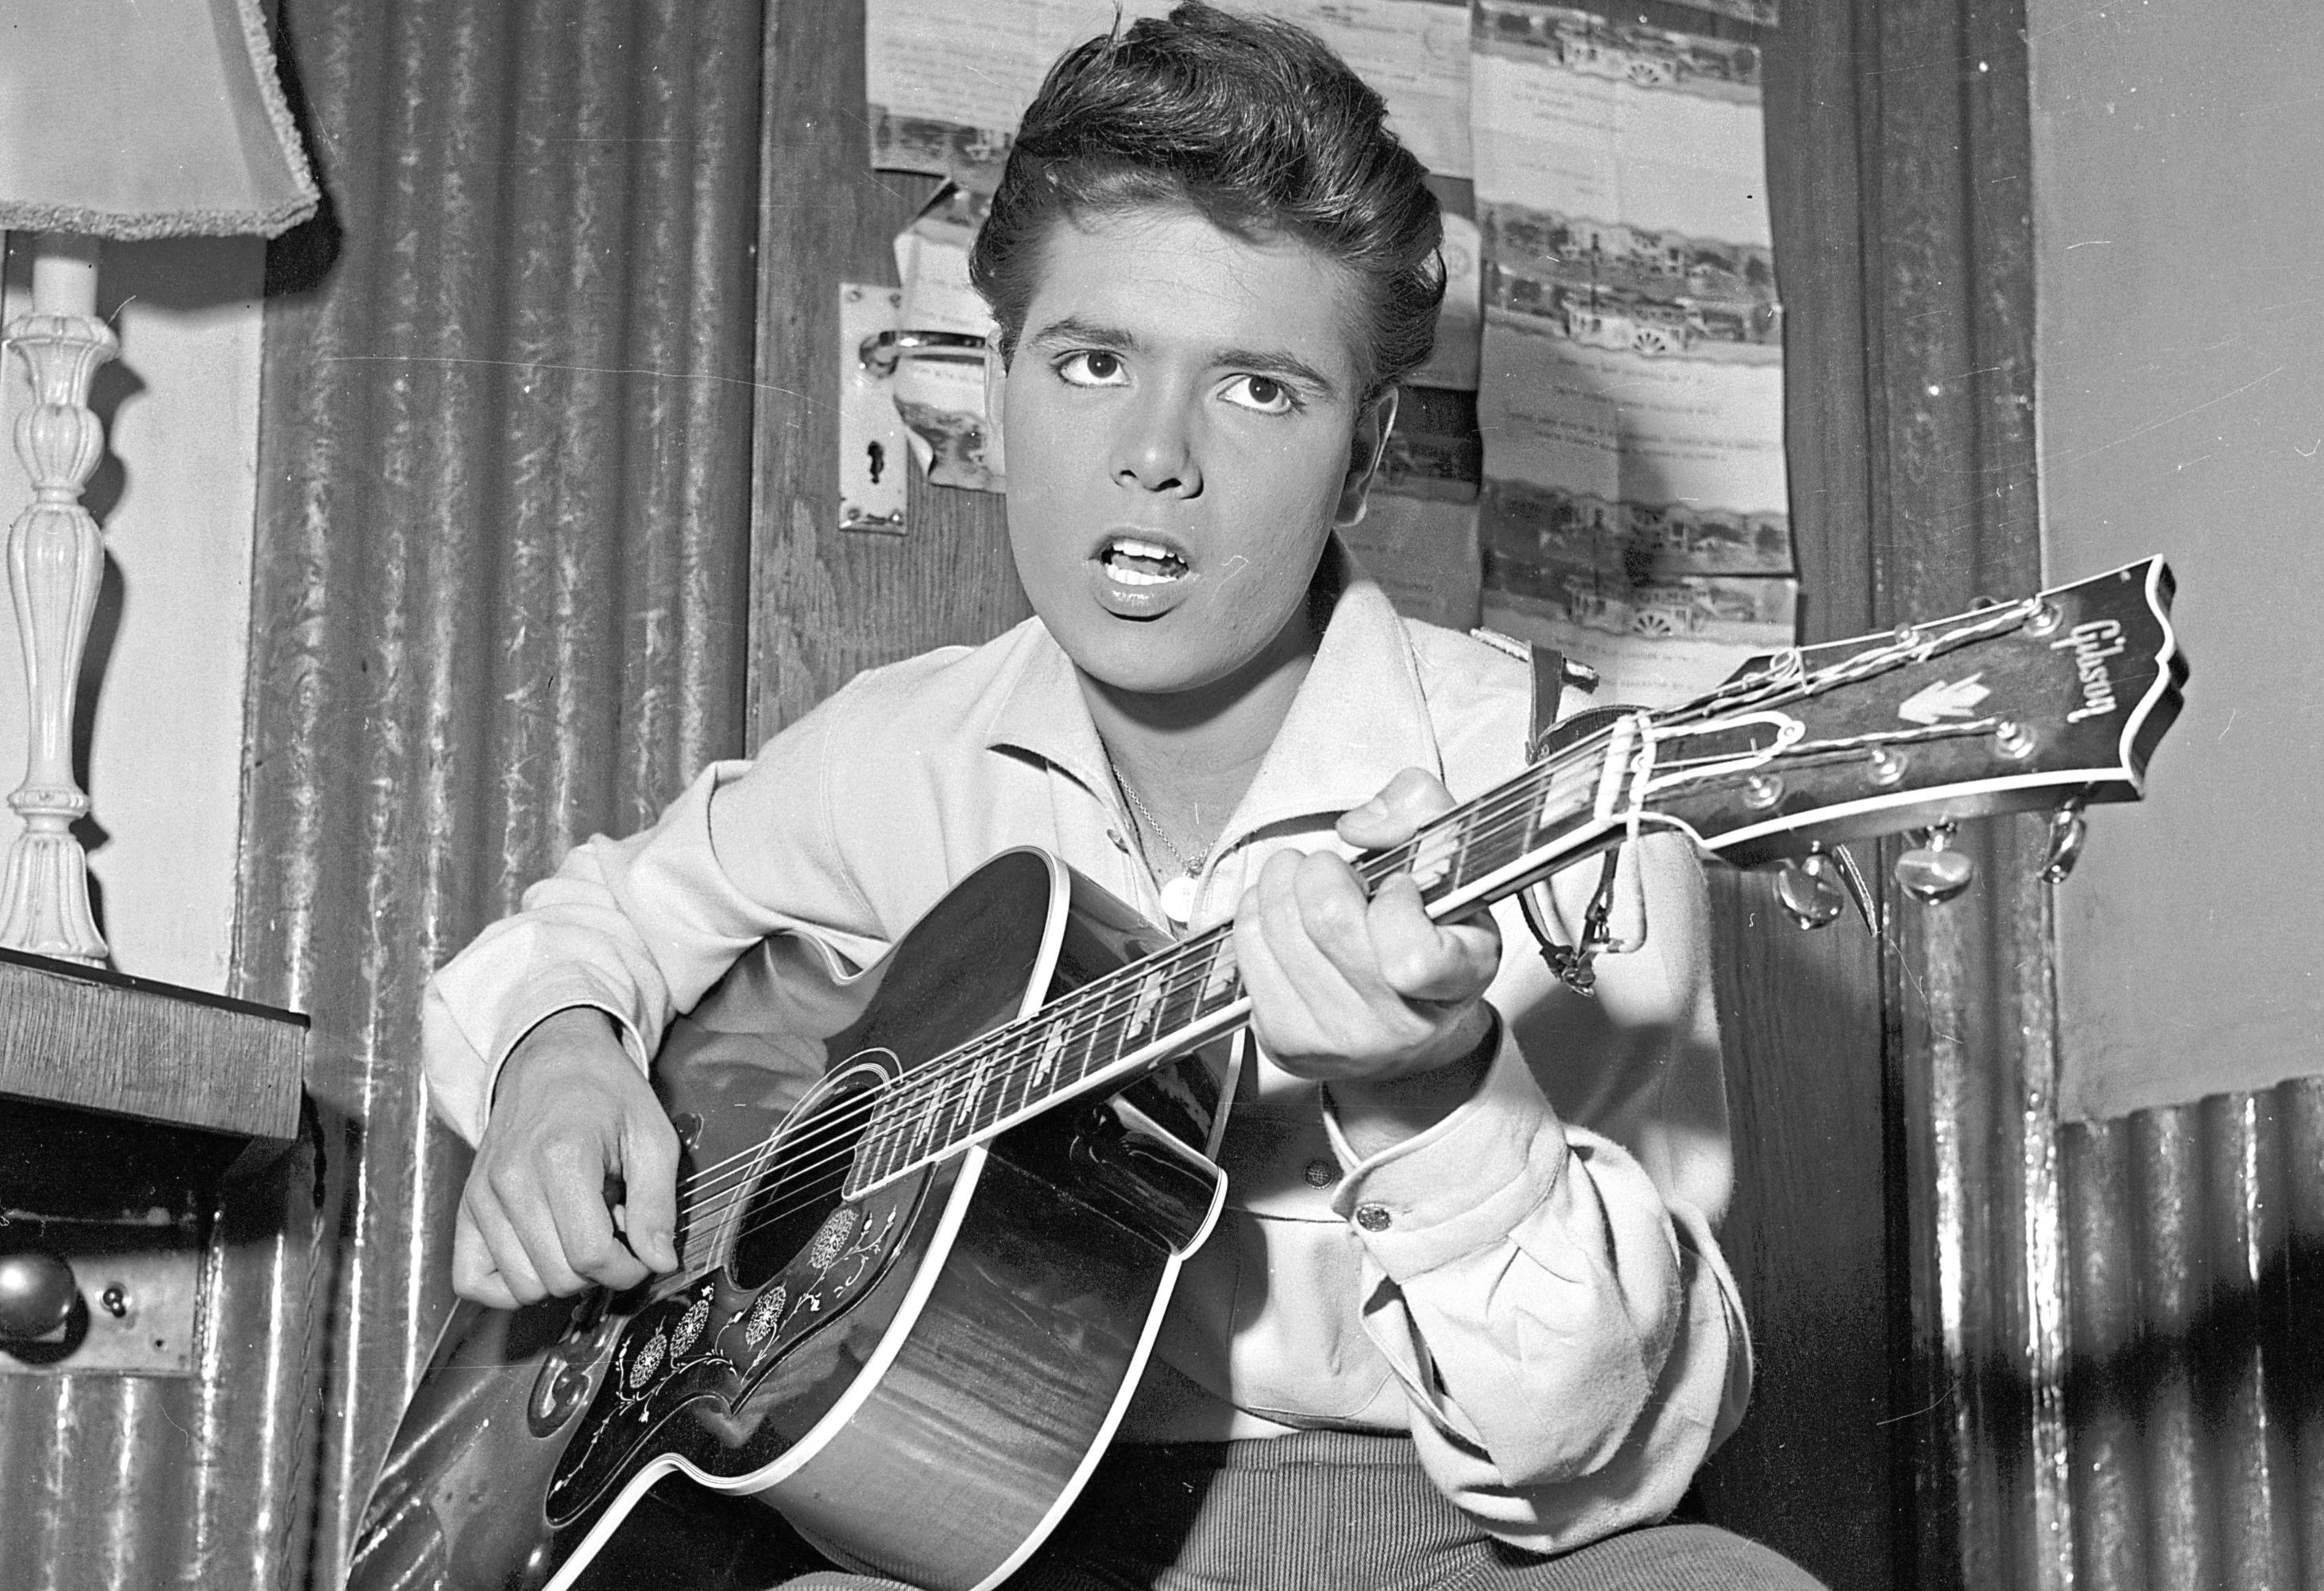 5th August 1960:  English pop star Cliff Richard strums a tune on his trusty guitar before a concert.  (John Pratt/Keystone Features/Getty Images)